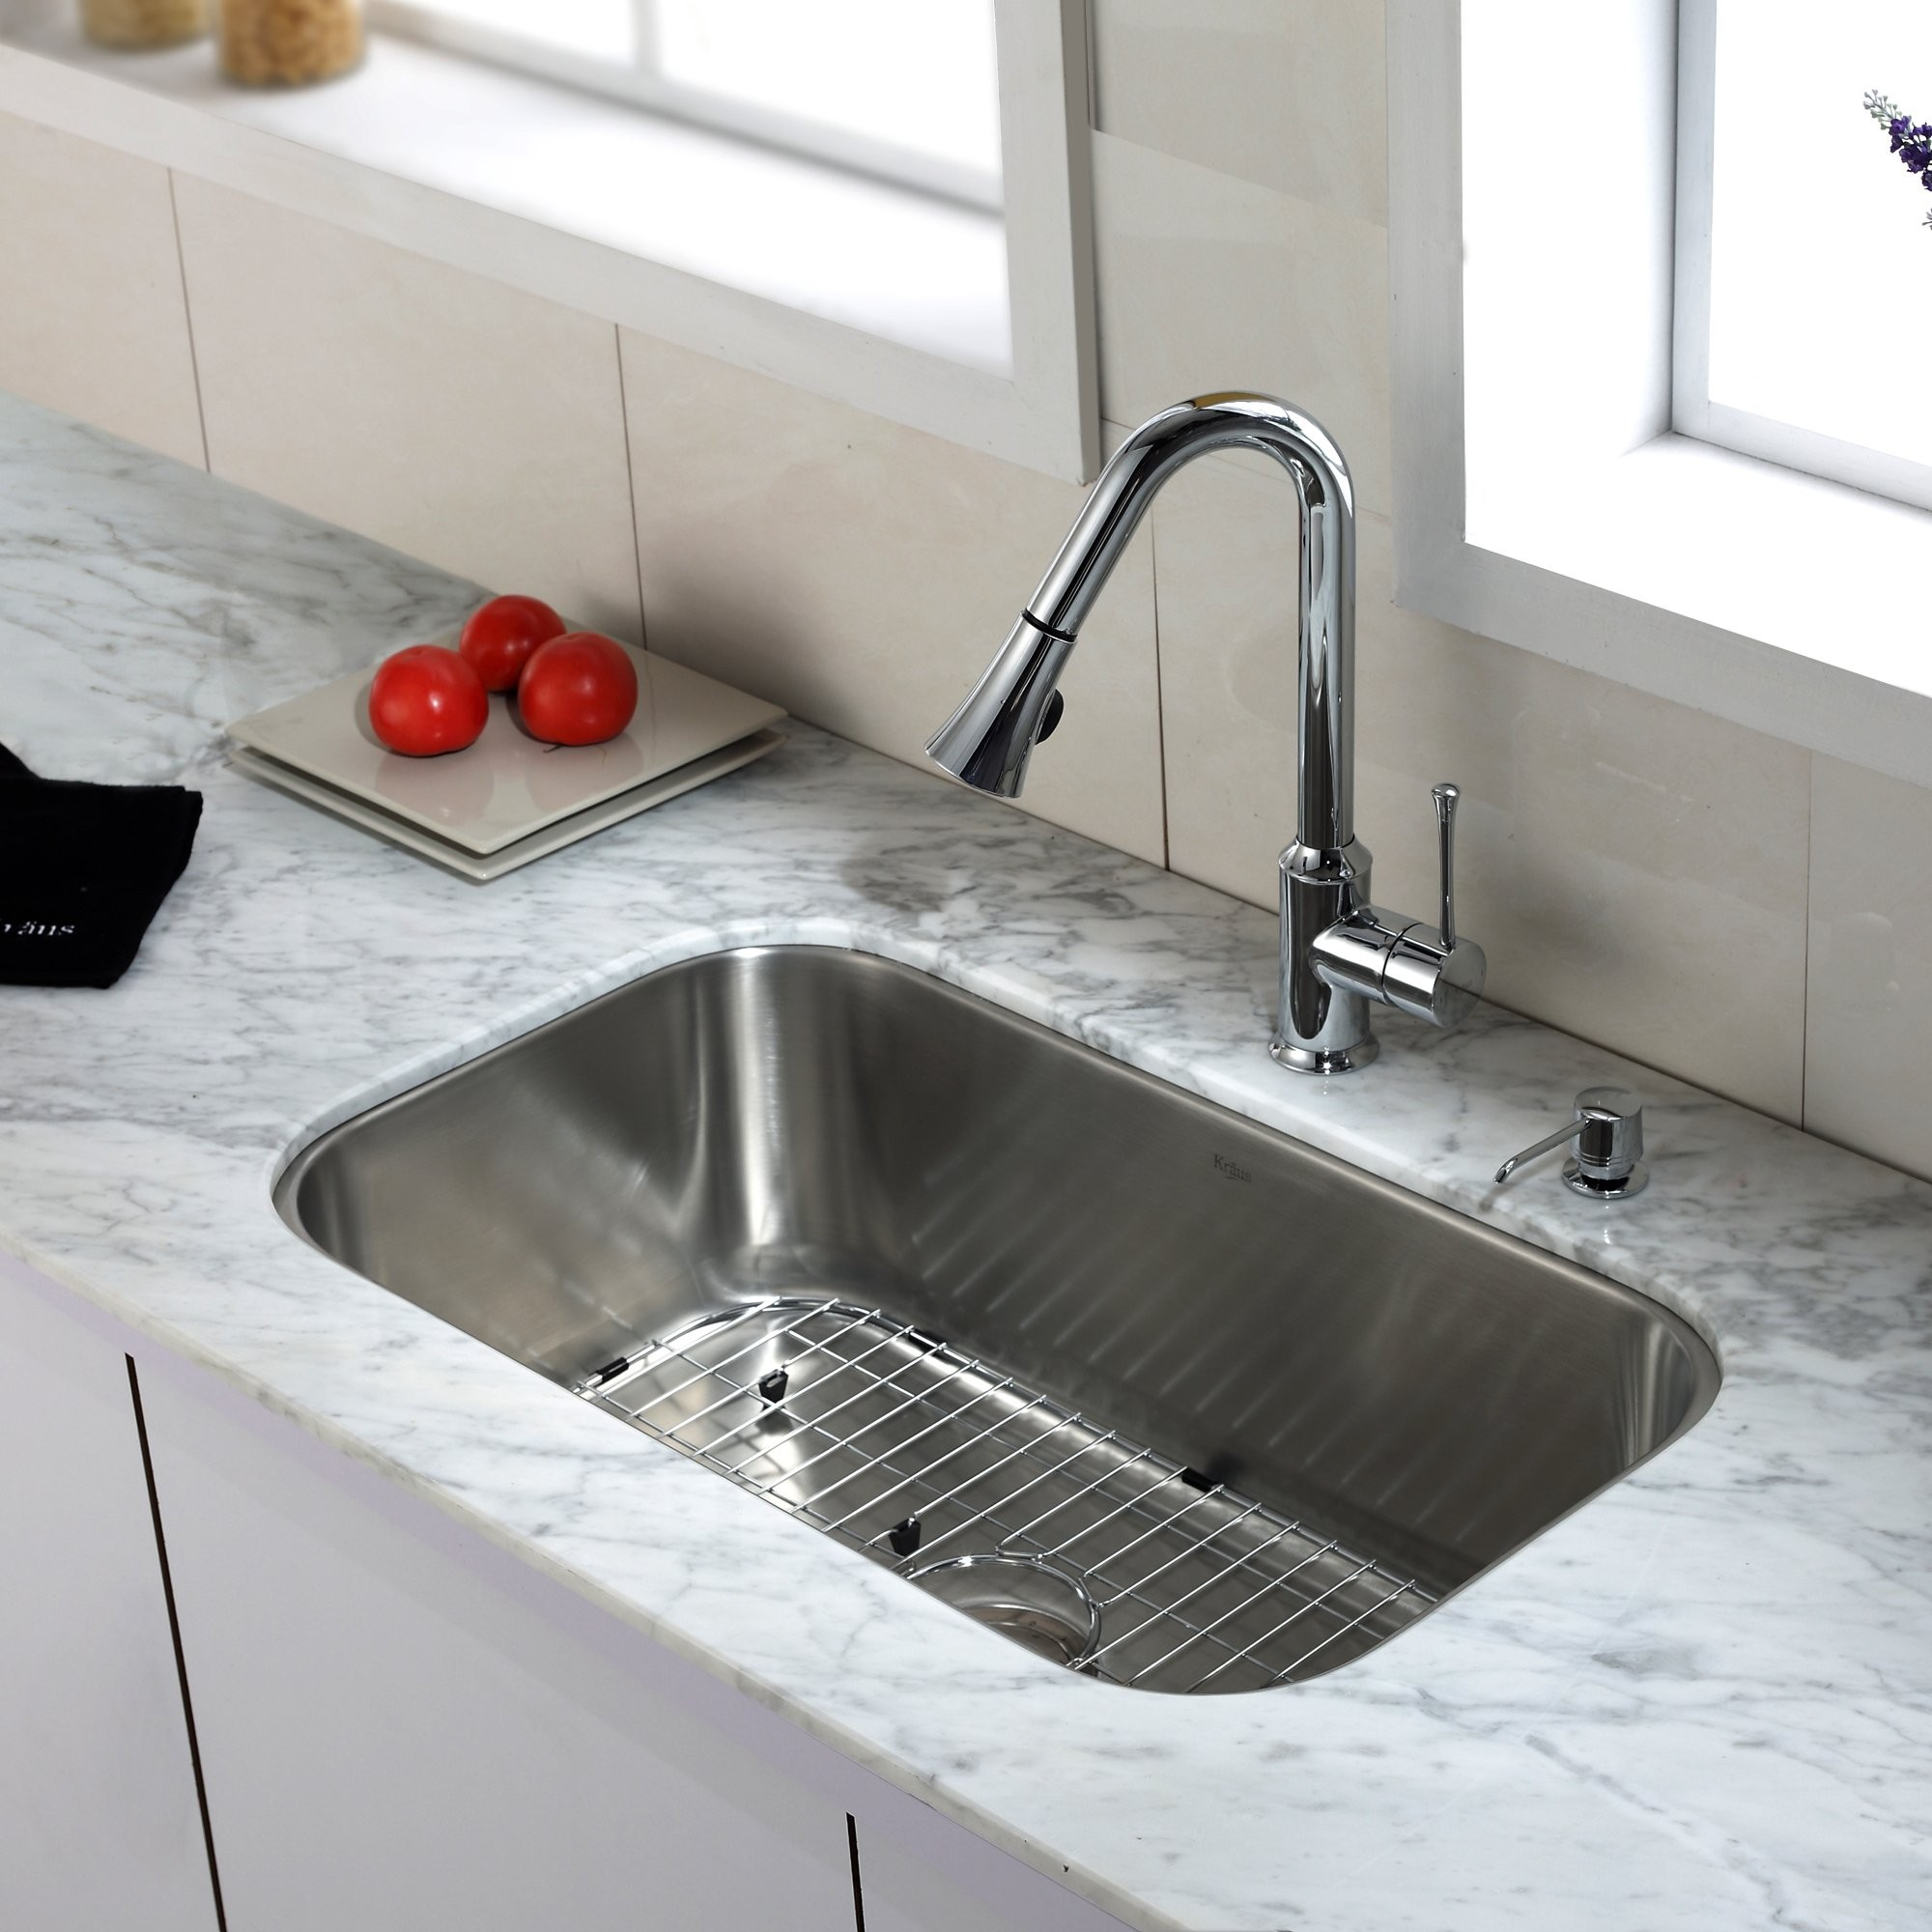 Awesome-New-Kitchen-Sink-Awesome-Best-Sink-For-Kitchen-for-Home-Design-Ideas-with-Best-Sink-For-Kitchen